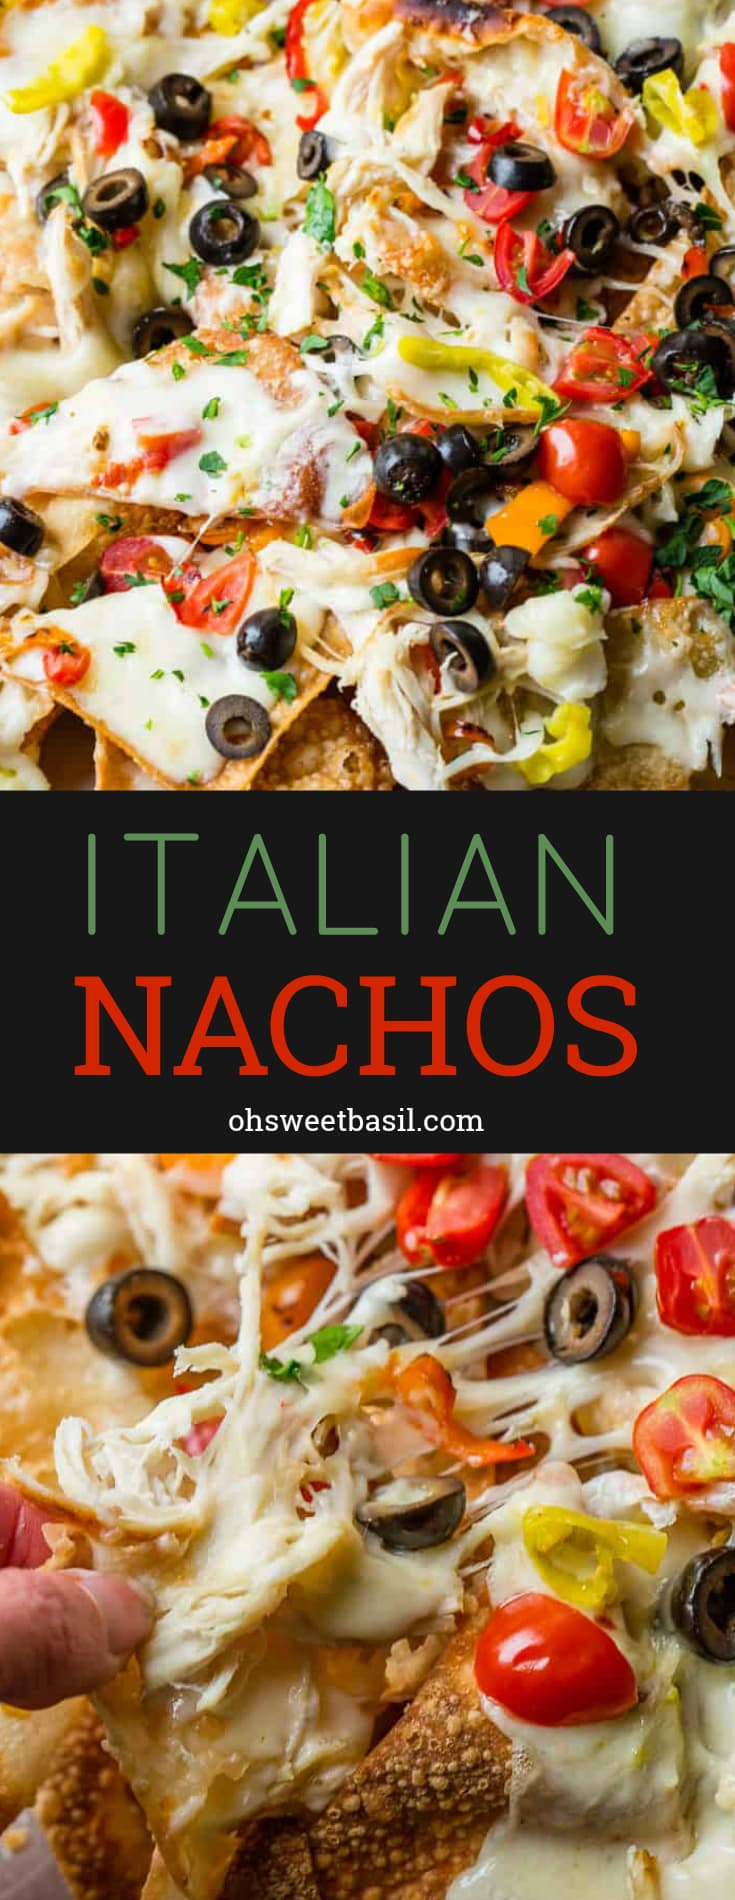 Fried wontons covered in alfredo sauce, cheese, chicken, peppers and olives for the perfect Italian Nachos